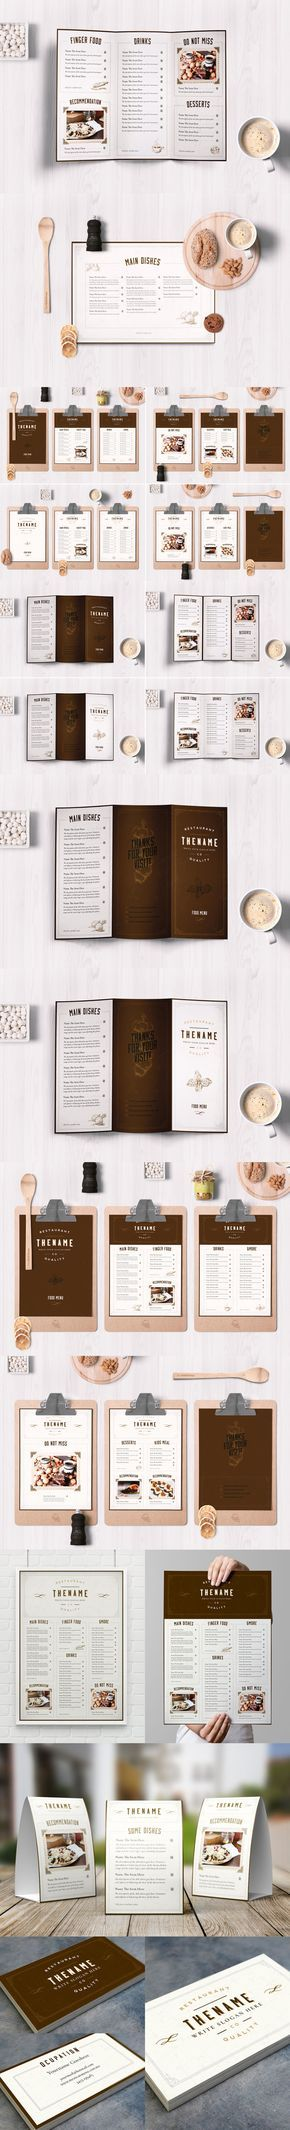 The 25+ best Menu layout ideas on Pinterest Menu design, Menu - bar menu template